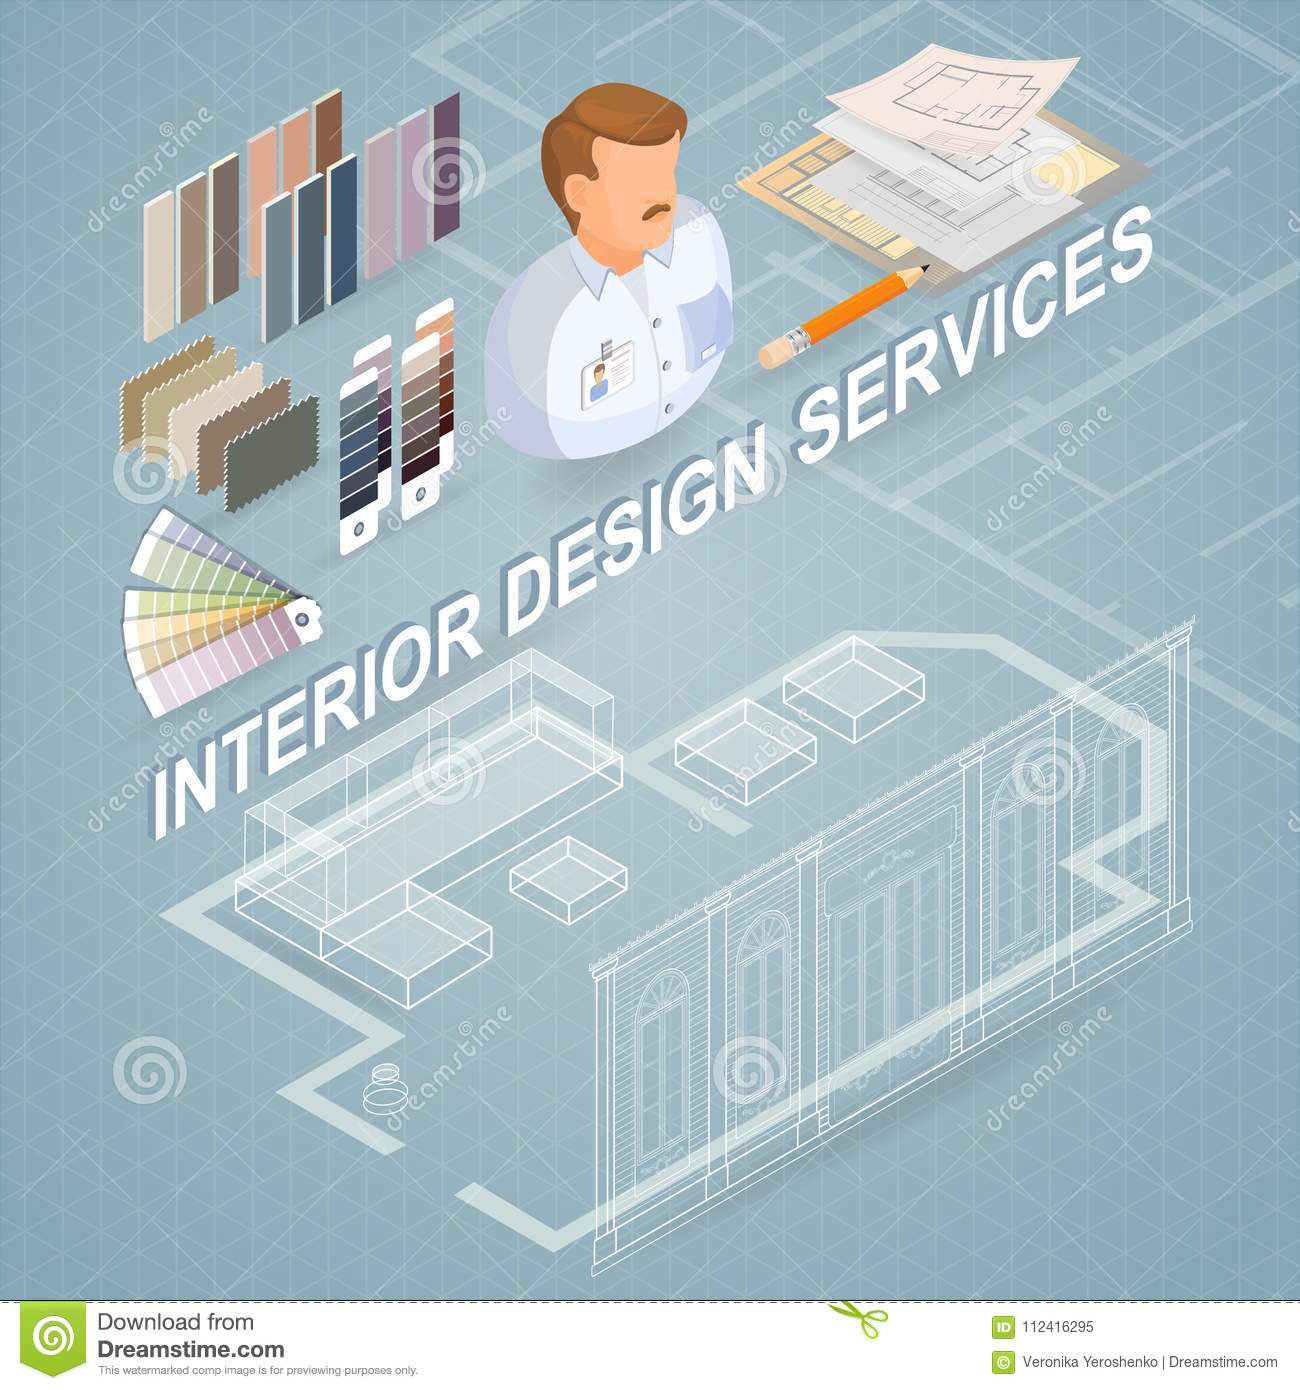 Interior design services isometric project and repairs concept interior design services isometric project and repairs concept ccuart Image collections